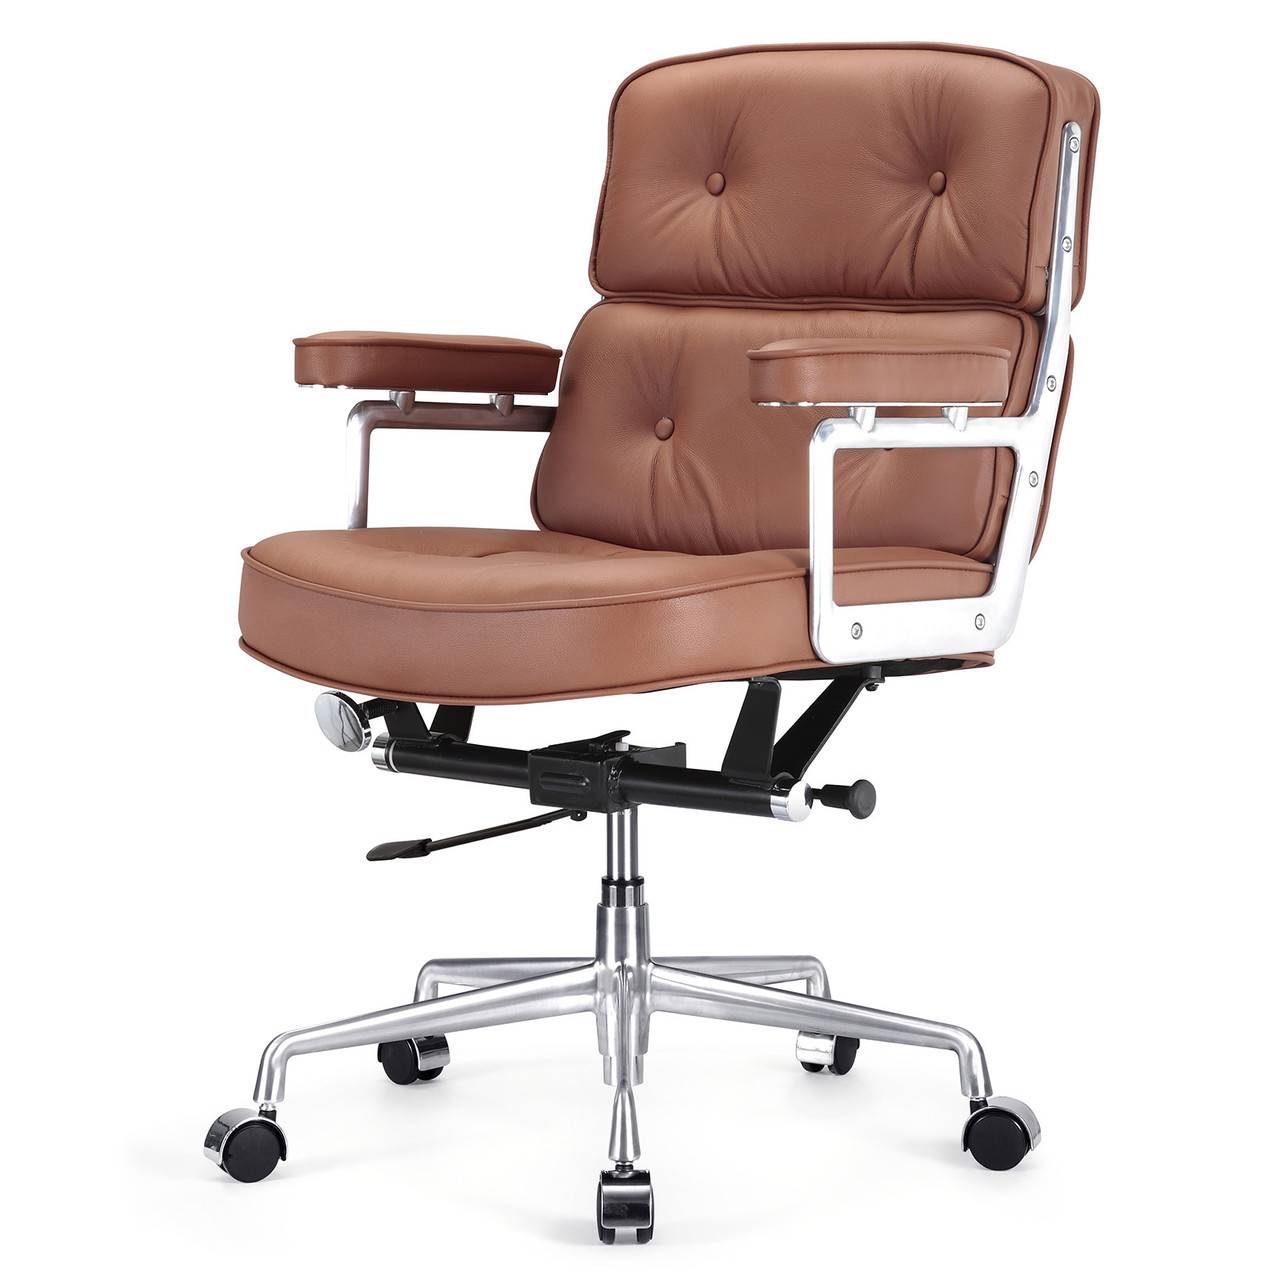 executive brown leather office chairs squirrel feeder chair italian m340 zin home